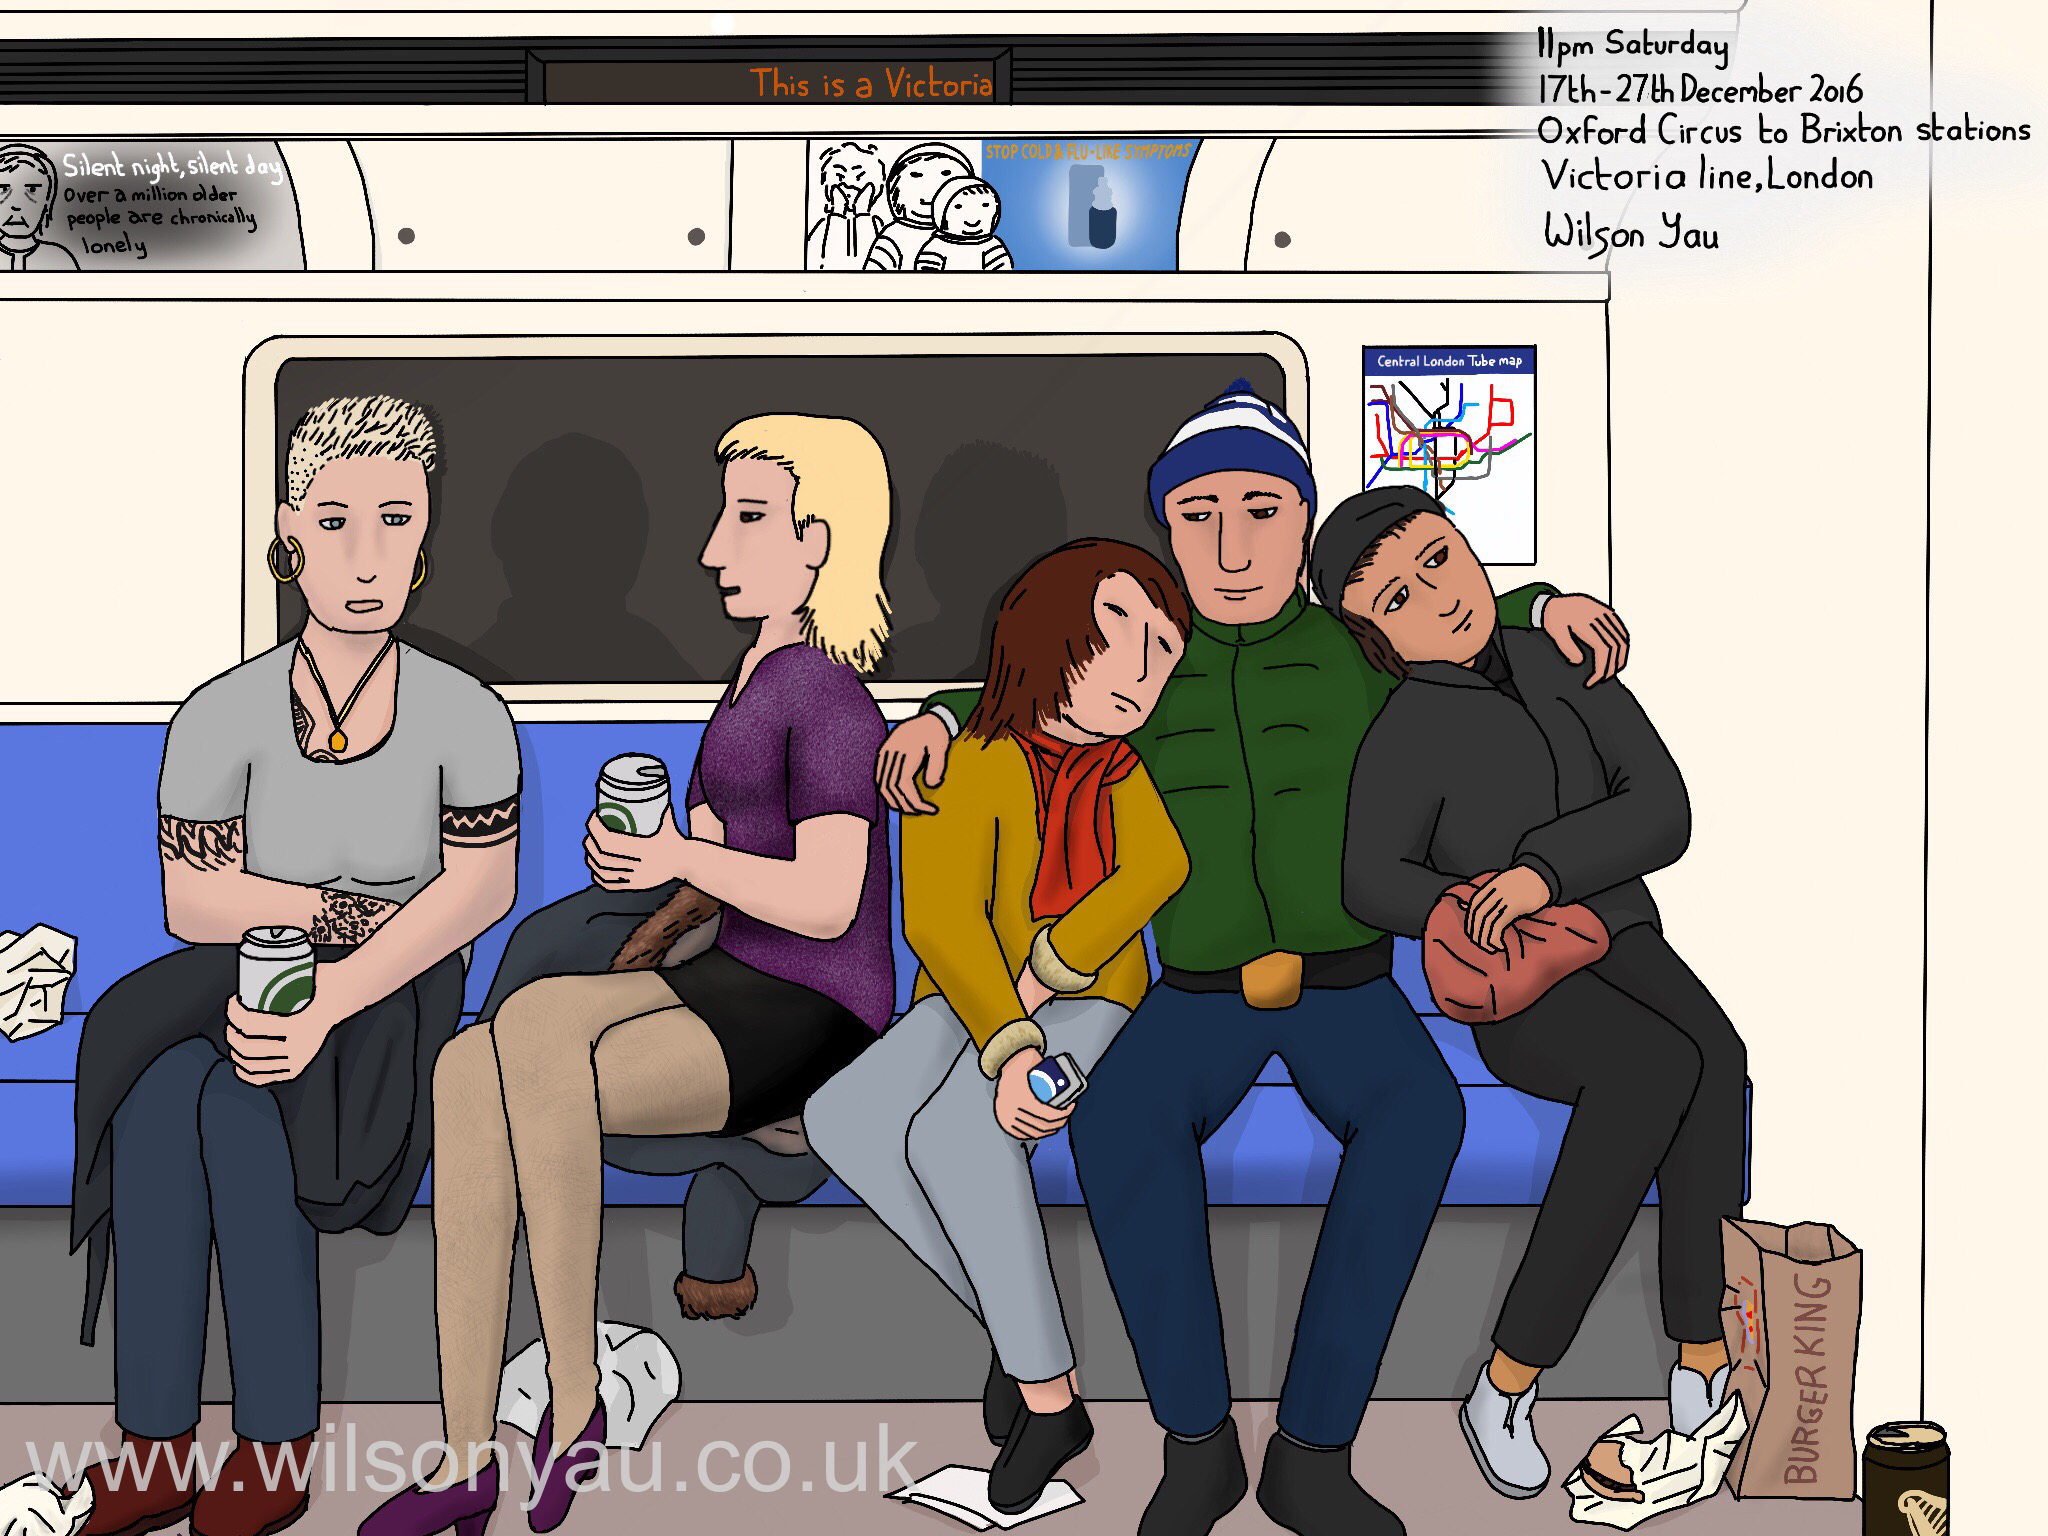 11pm Saturday, Oxford Circus to Brixton stations, Victoria line, London, 17th December 2016 (Drawing 807)